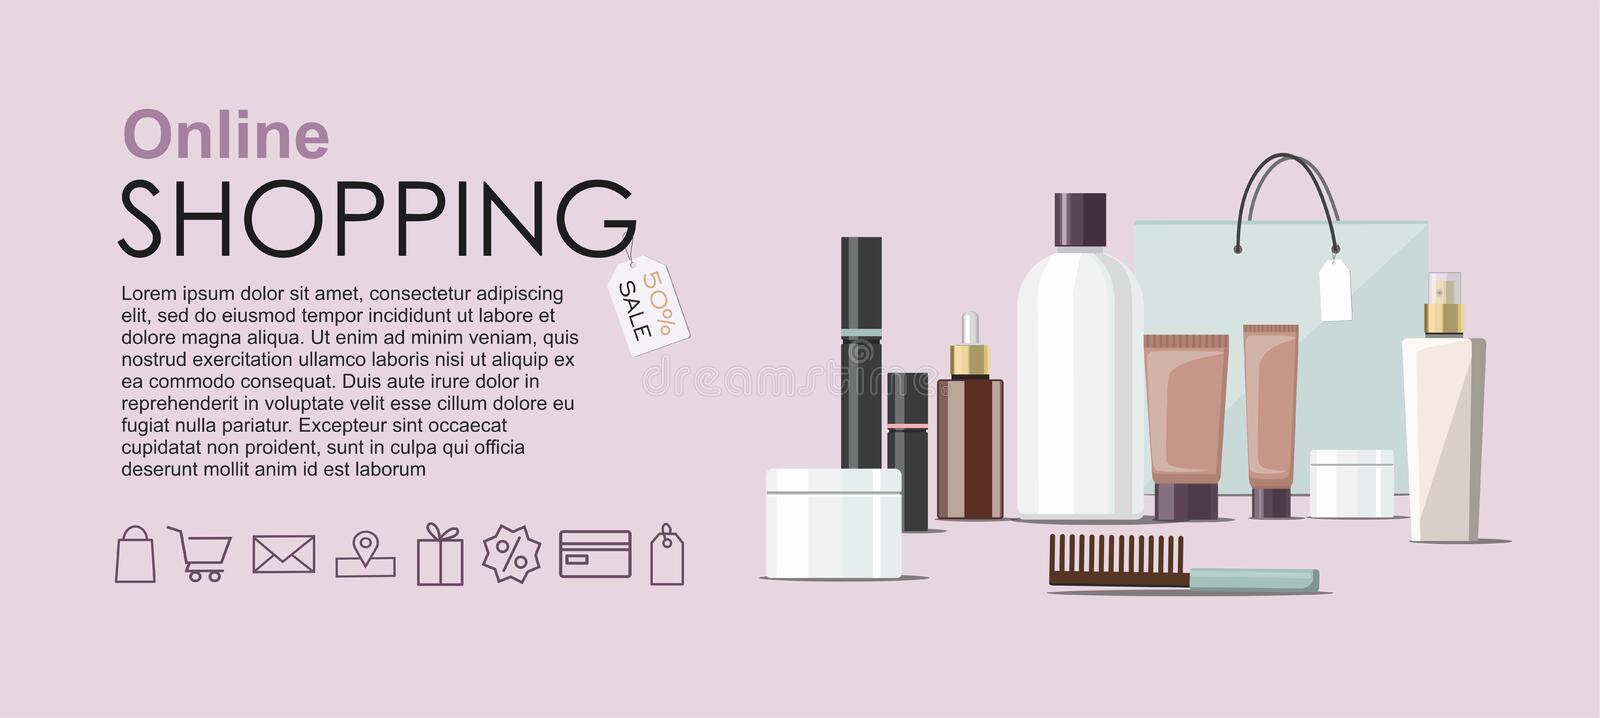 Make Up products and Skincare Packaging  with cosmetic bag. Online shopping web banner stock illustration